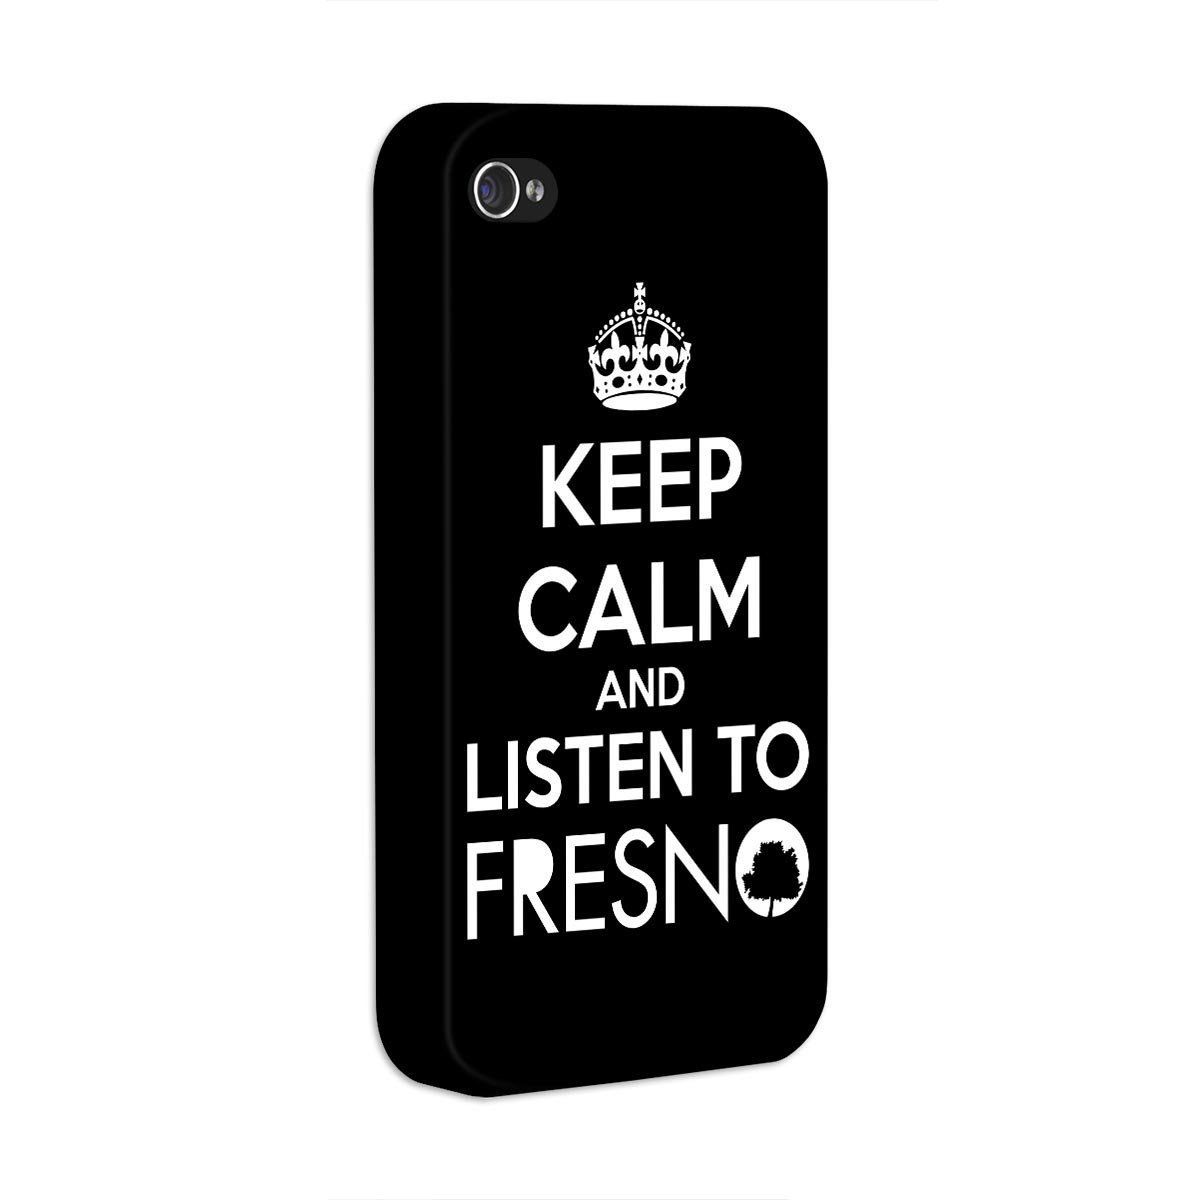 Capa de iPhone 4/4S Fresno - Keep Calm